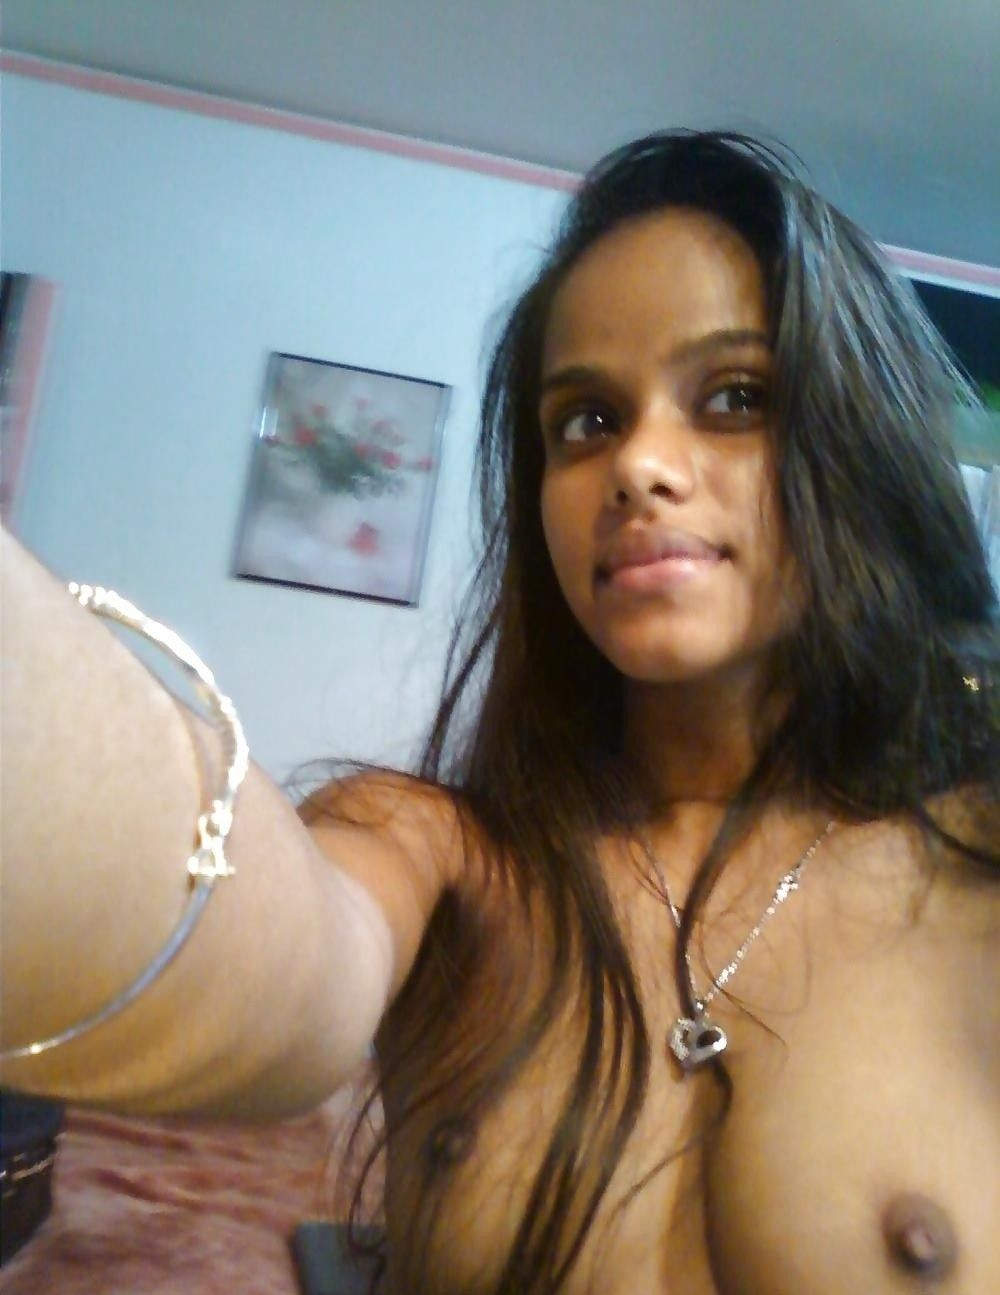 Indian teen selfie nude